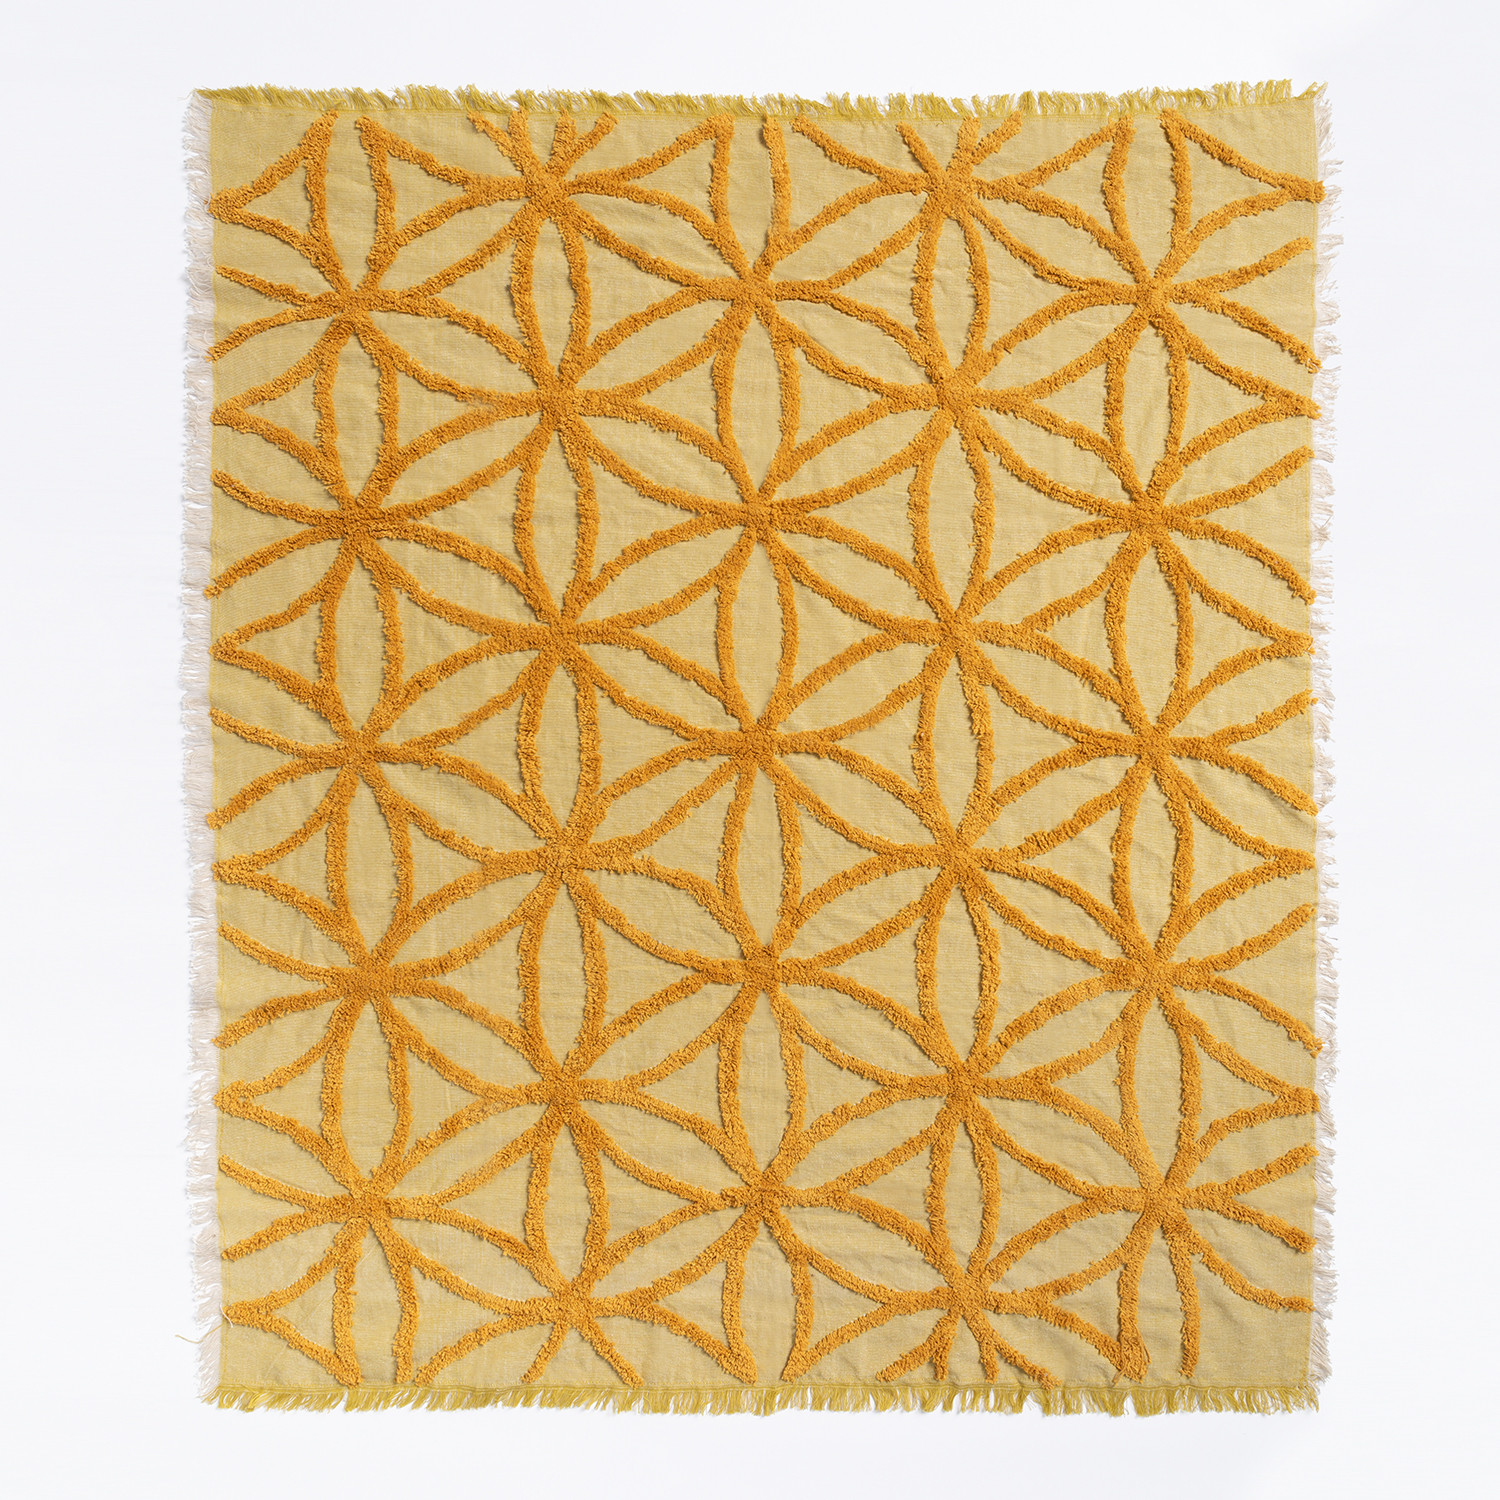 Plaid Cotton Blanket Toth, gallery image 1